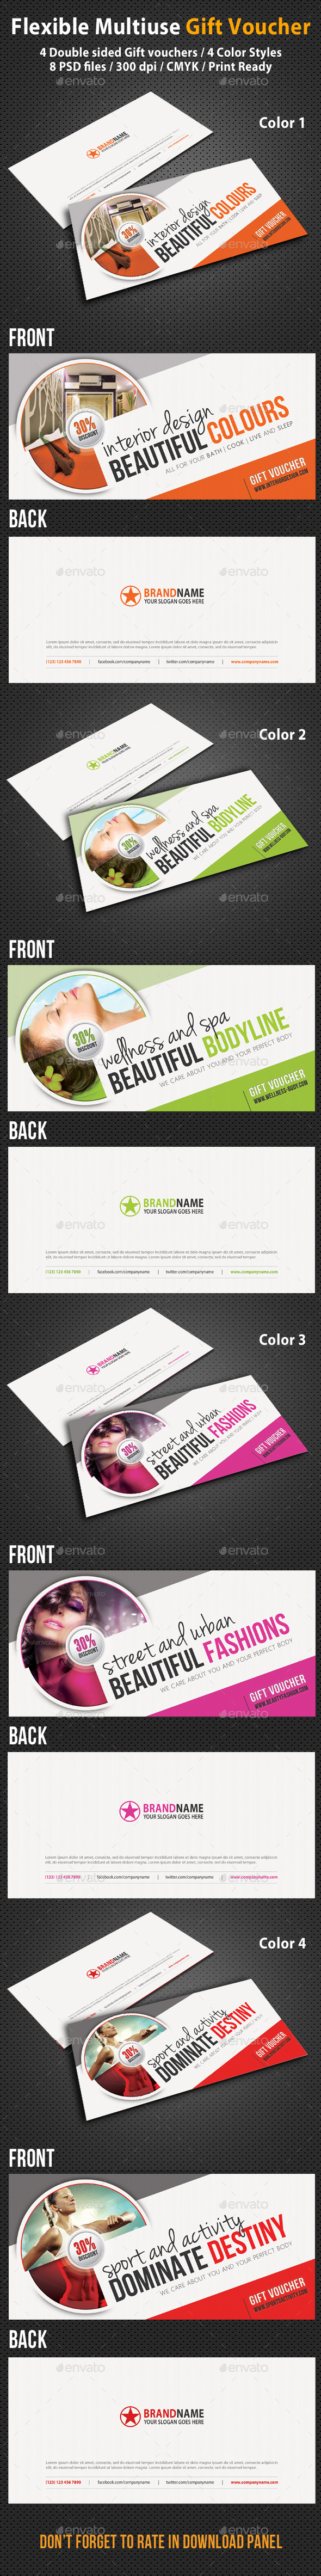 Creative Gift Voucher V02 - Cards & Invites Print Templates